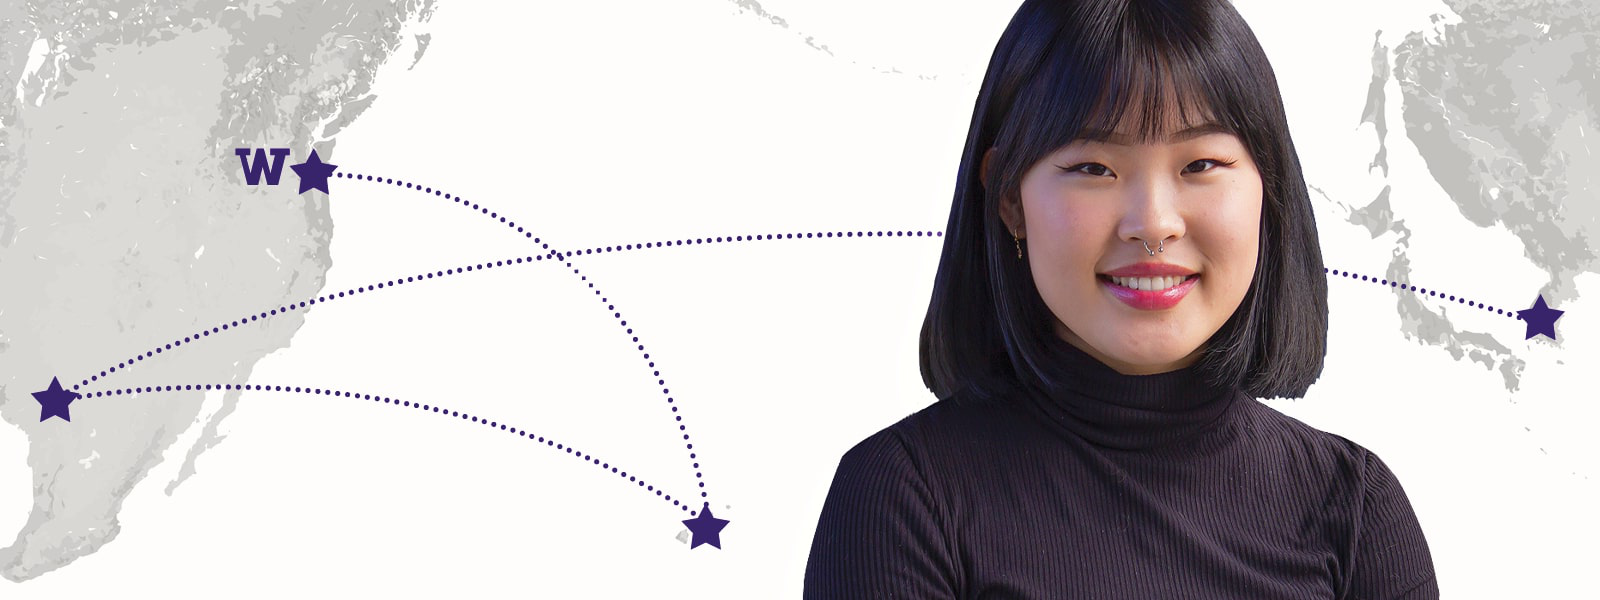 Image of UW Tacoma student Seonhwa Pak with a world map behind her.